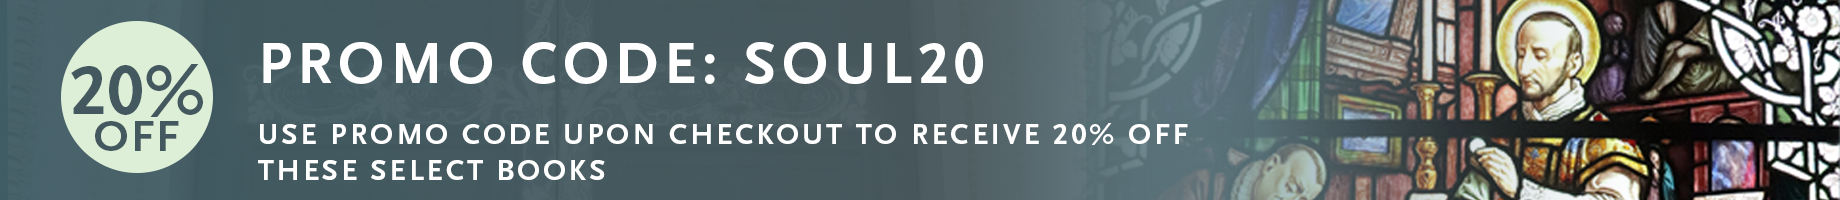 Care of the Soul Promotion - Use Promo Code SOUL20 to get 20% off these select books